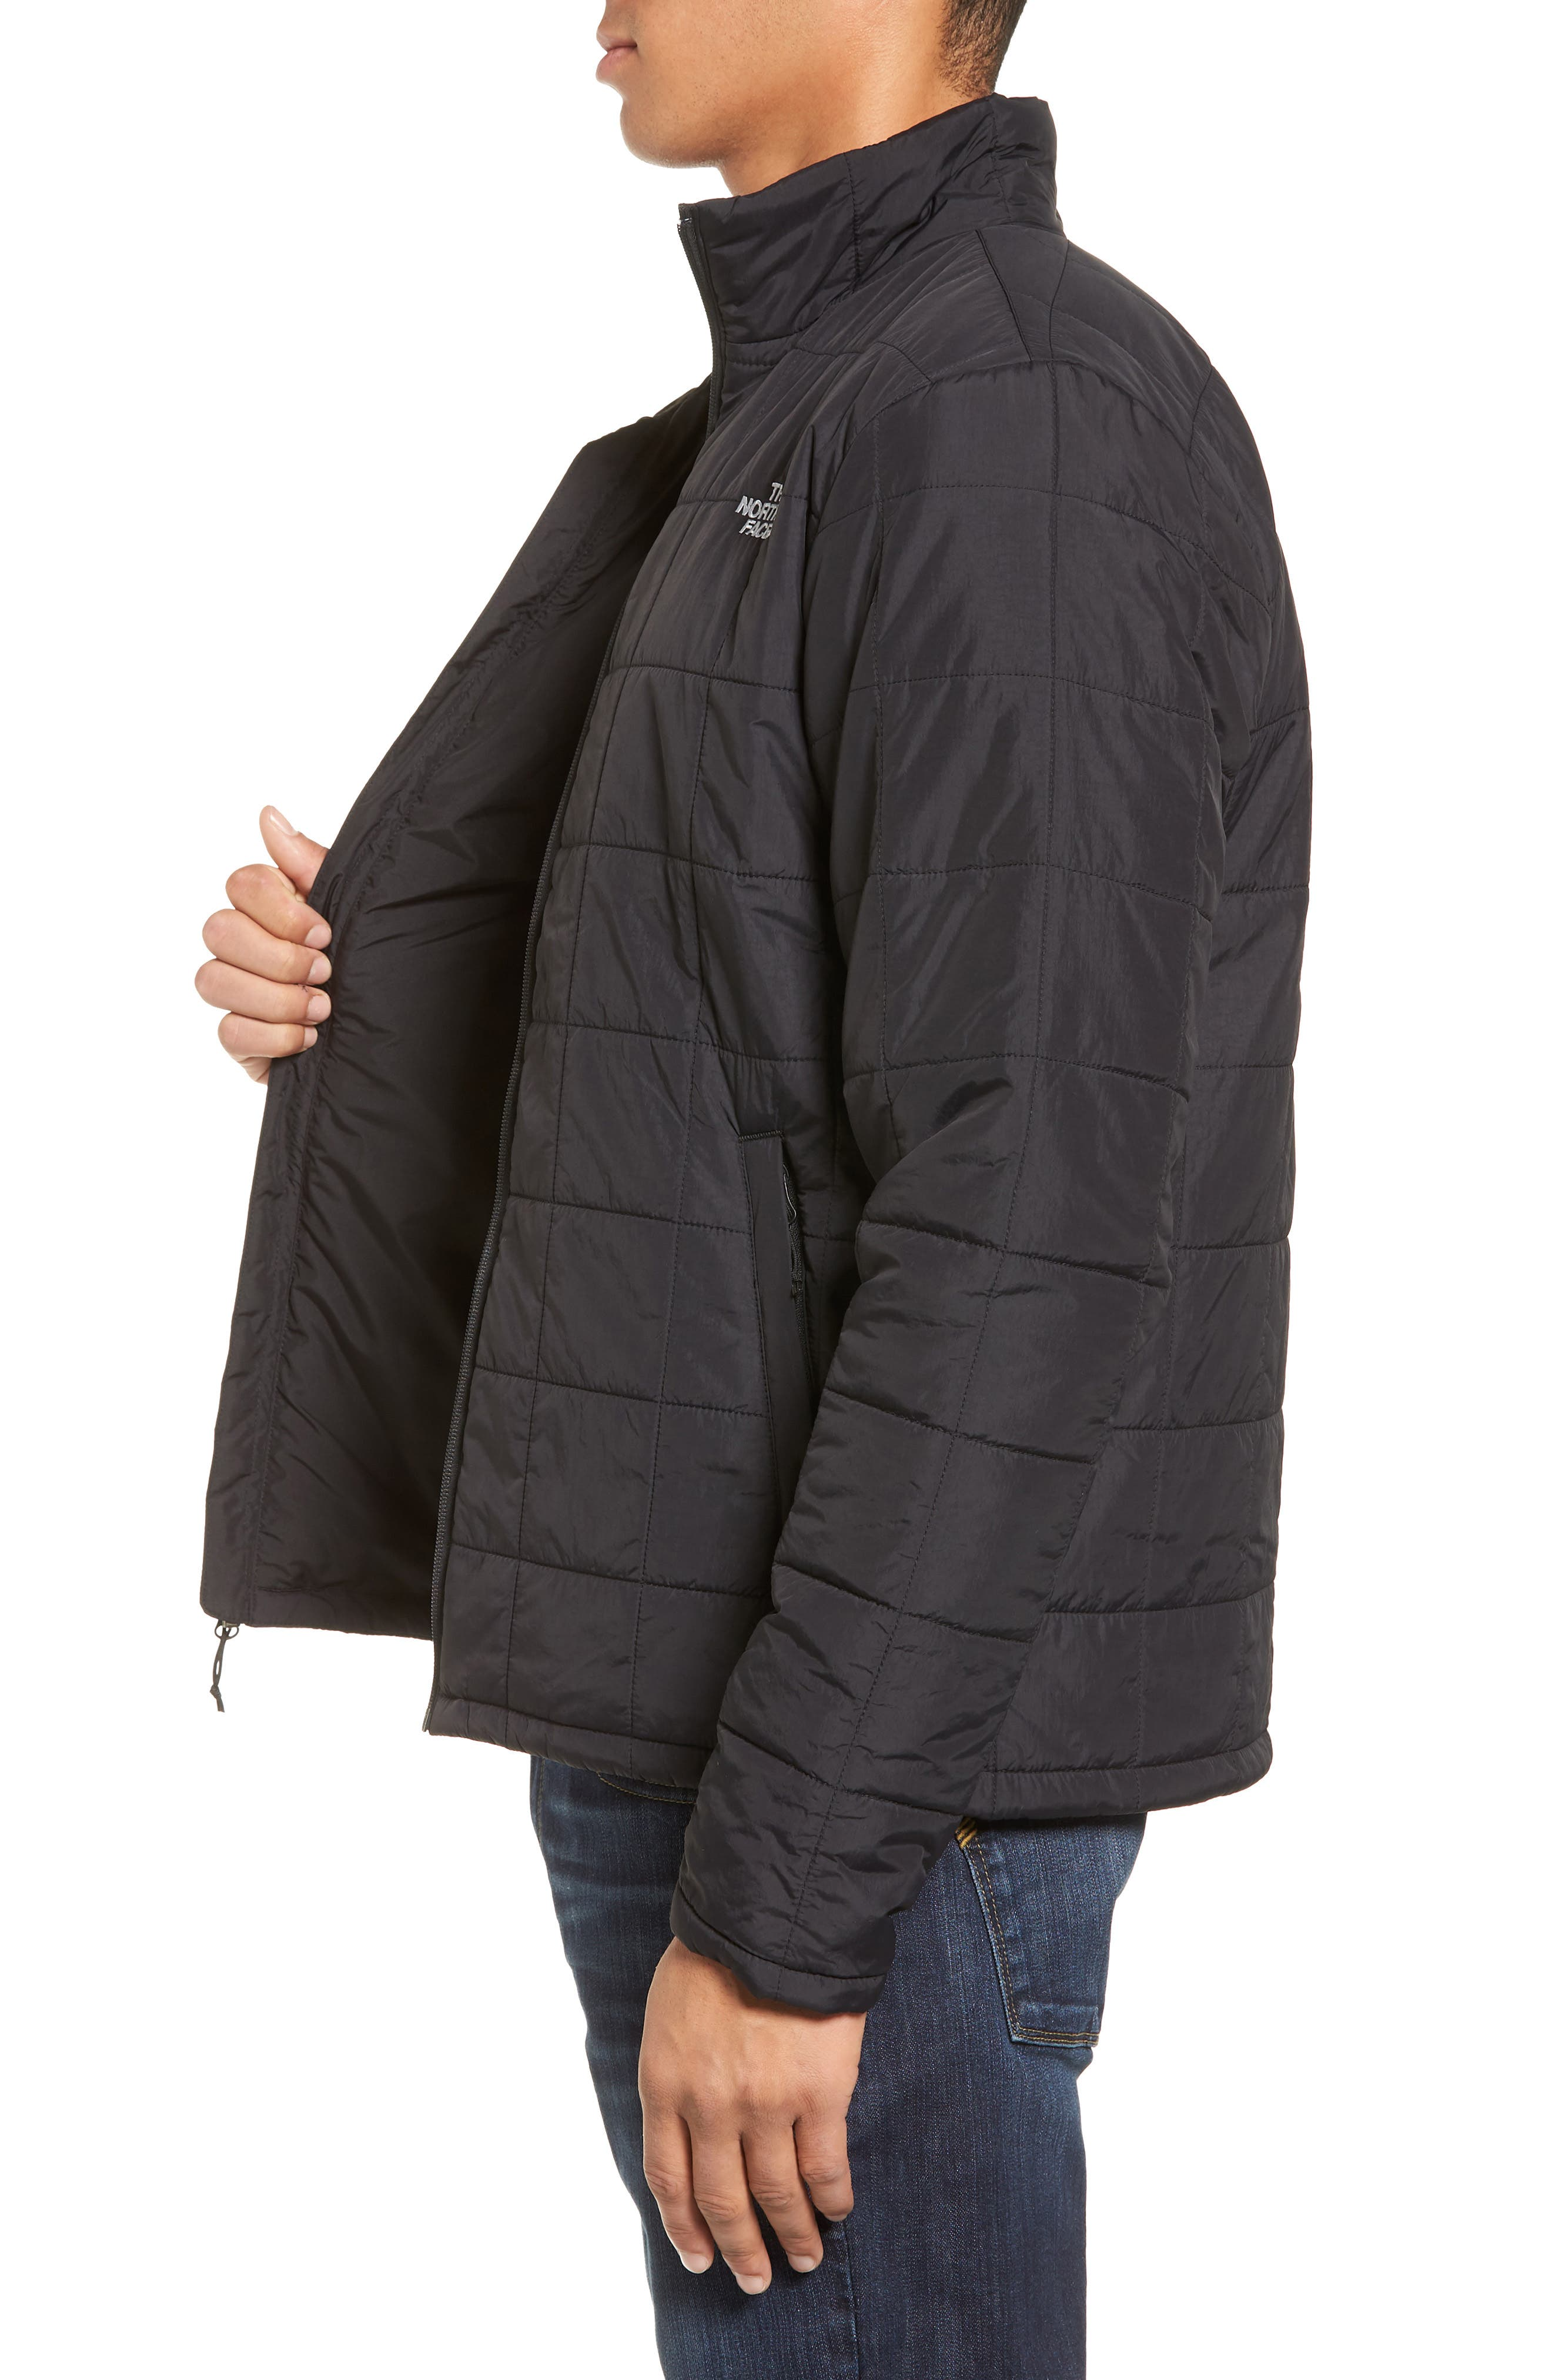 THE NORTH FACE, Harway Heatseaker<sup>™</sup> Jacket, Alternate thumbnail 4, color, 001